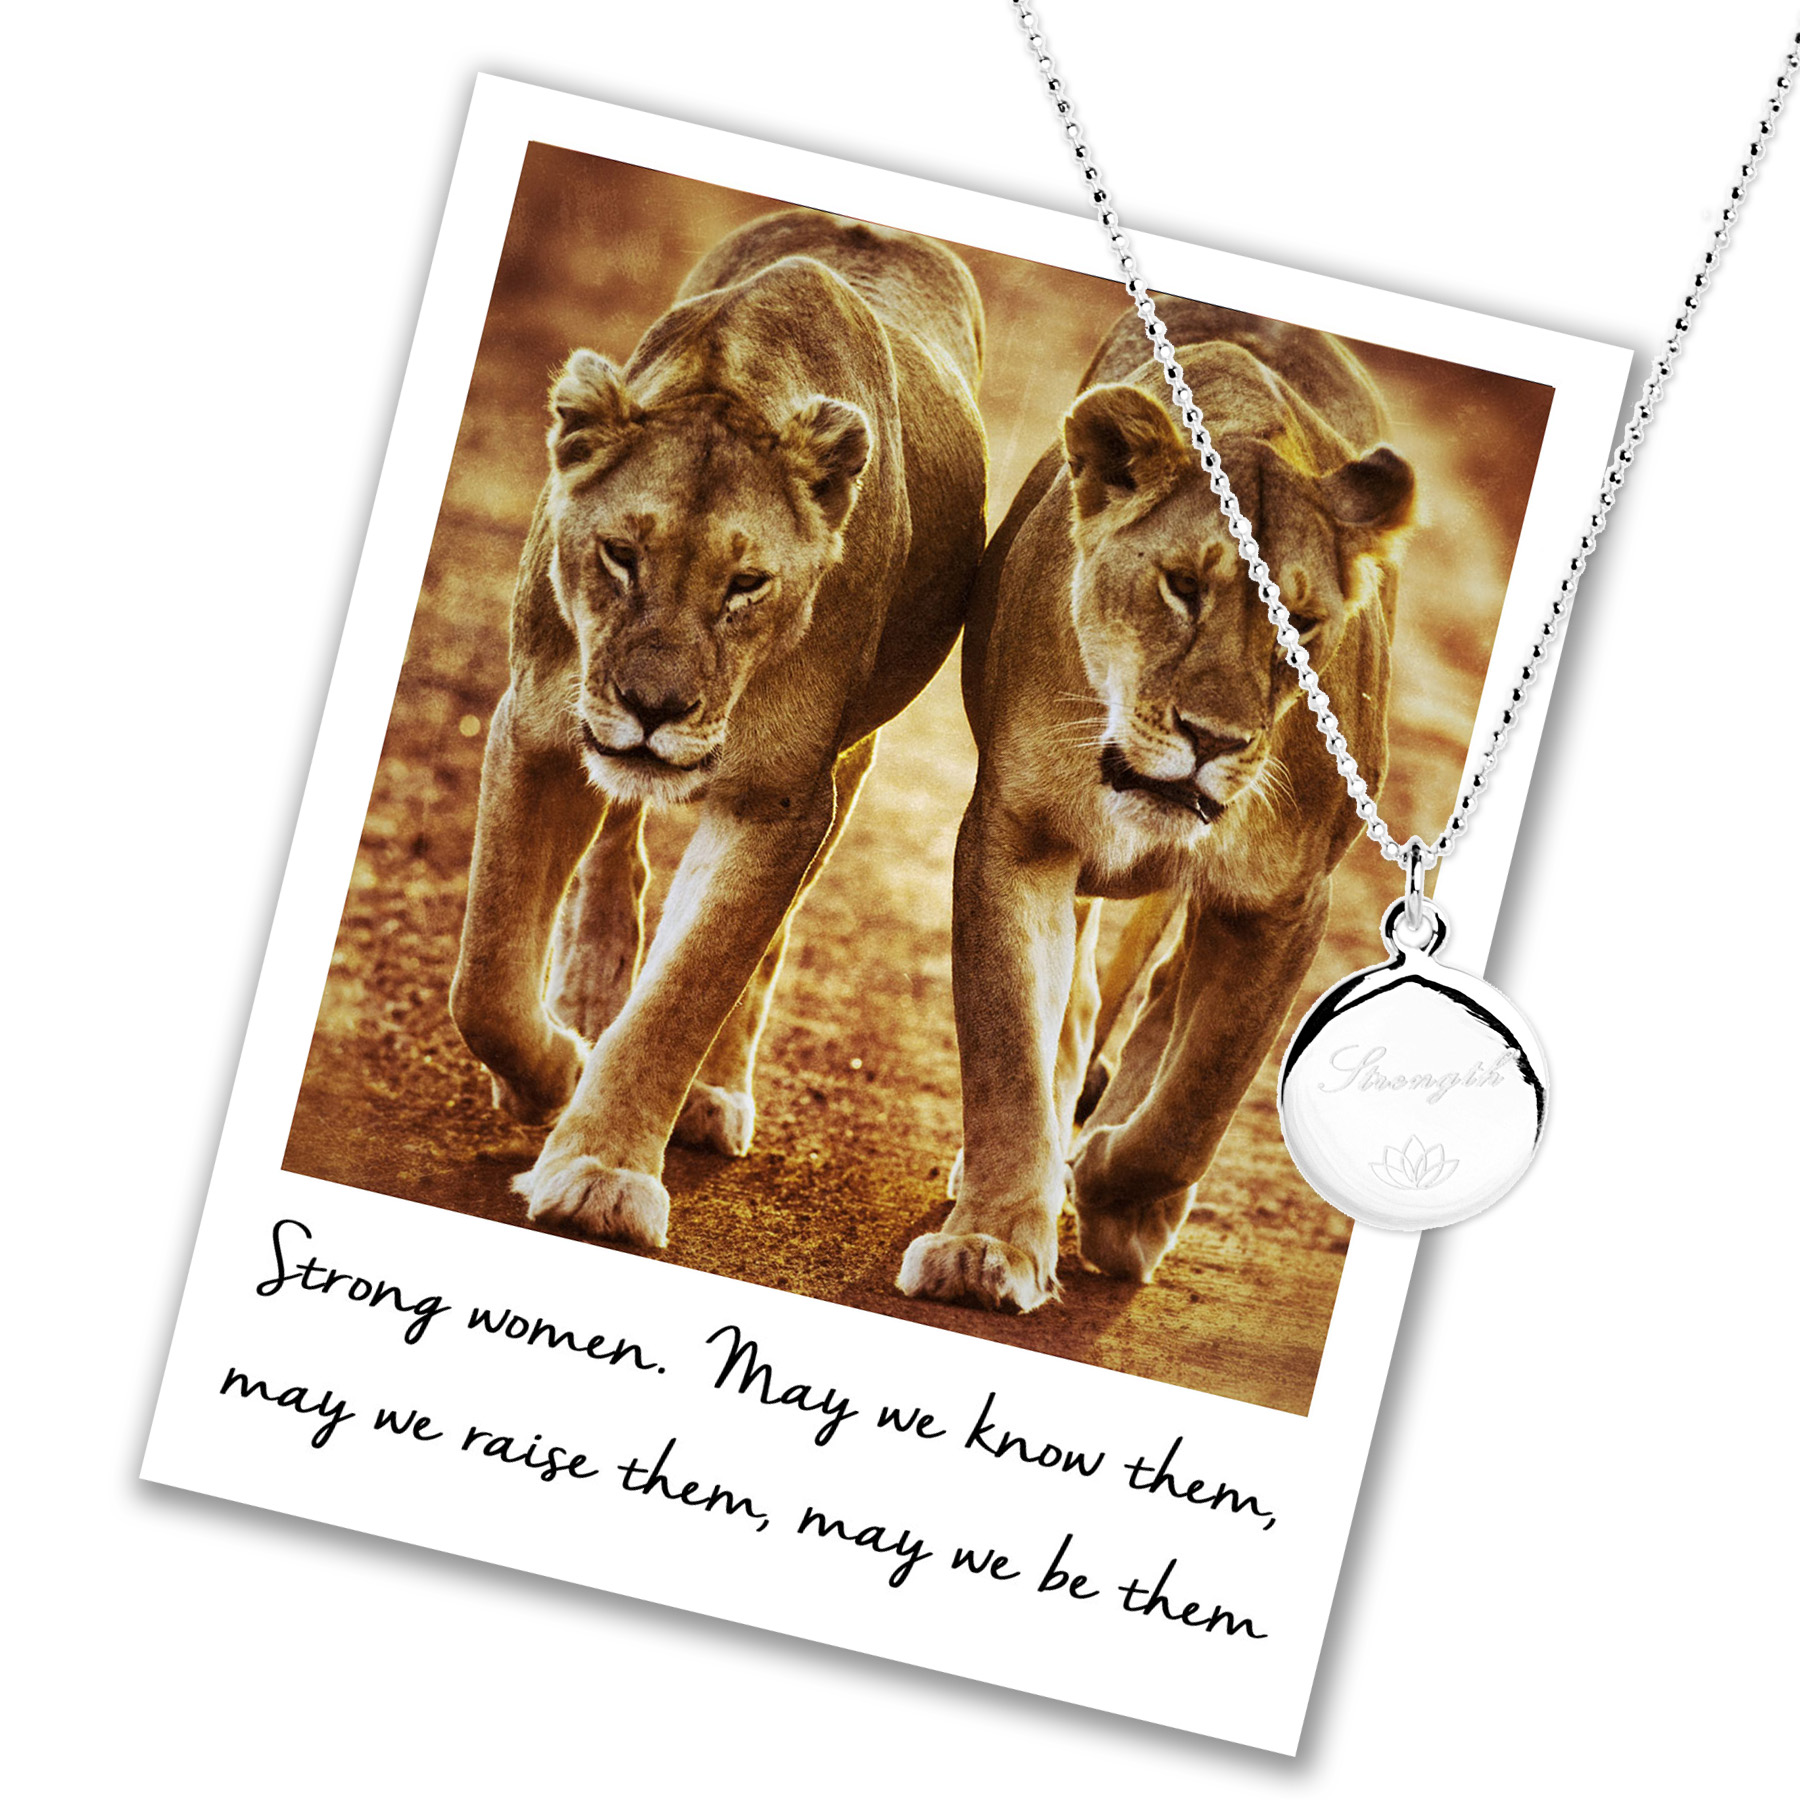 strong women lion authenticity inspirational motivational quotes text